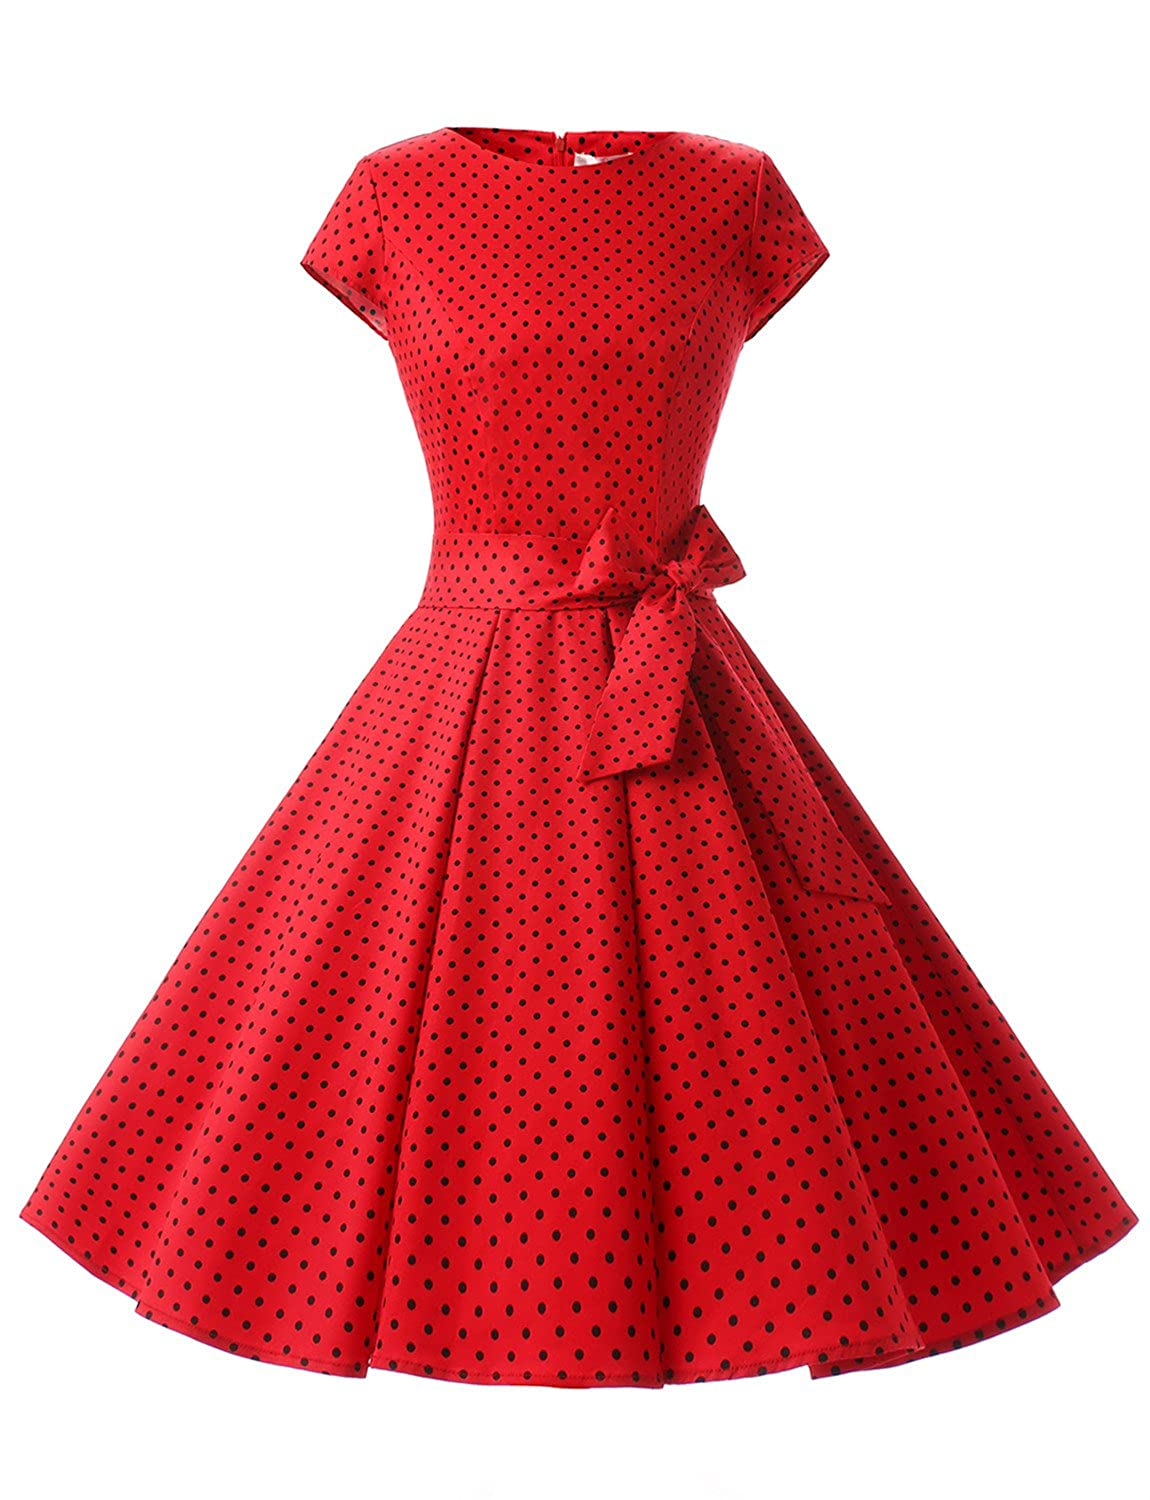 Rockabilly Dresses | Rockabilly Clothing | Viva Las Vegas Dressystar Women Vintage 1950s Retro Rockabilly Prom Dresses Cap-sleeve $27.69 AT vintagedancer.com